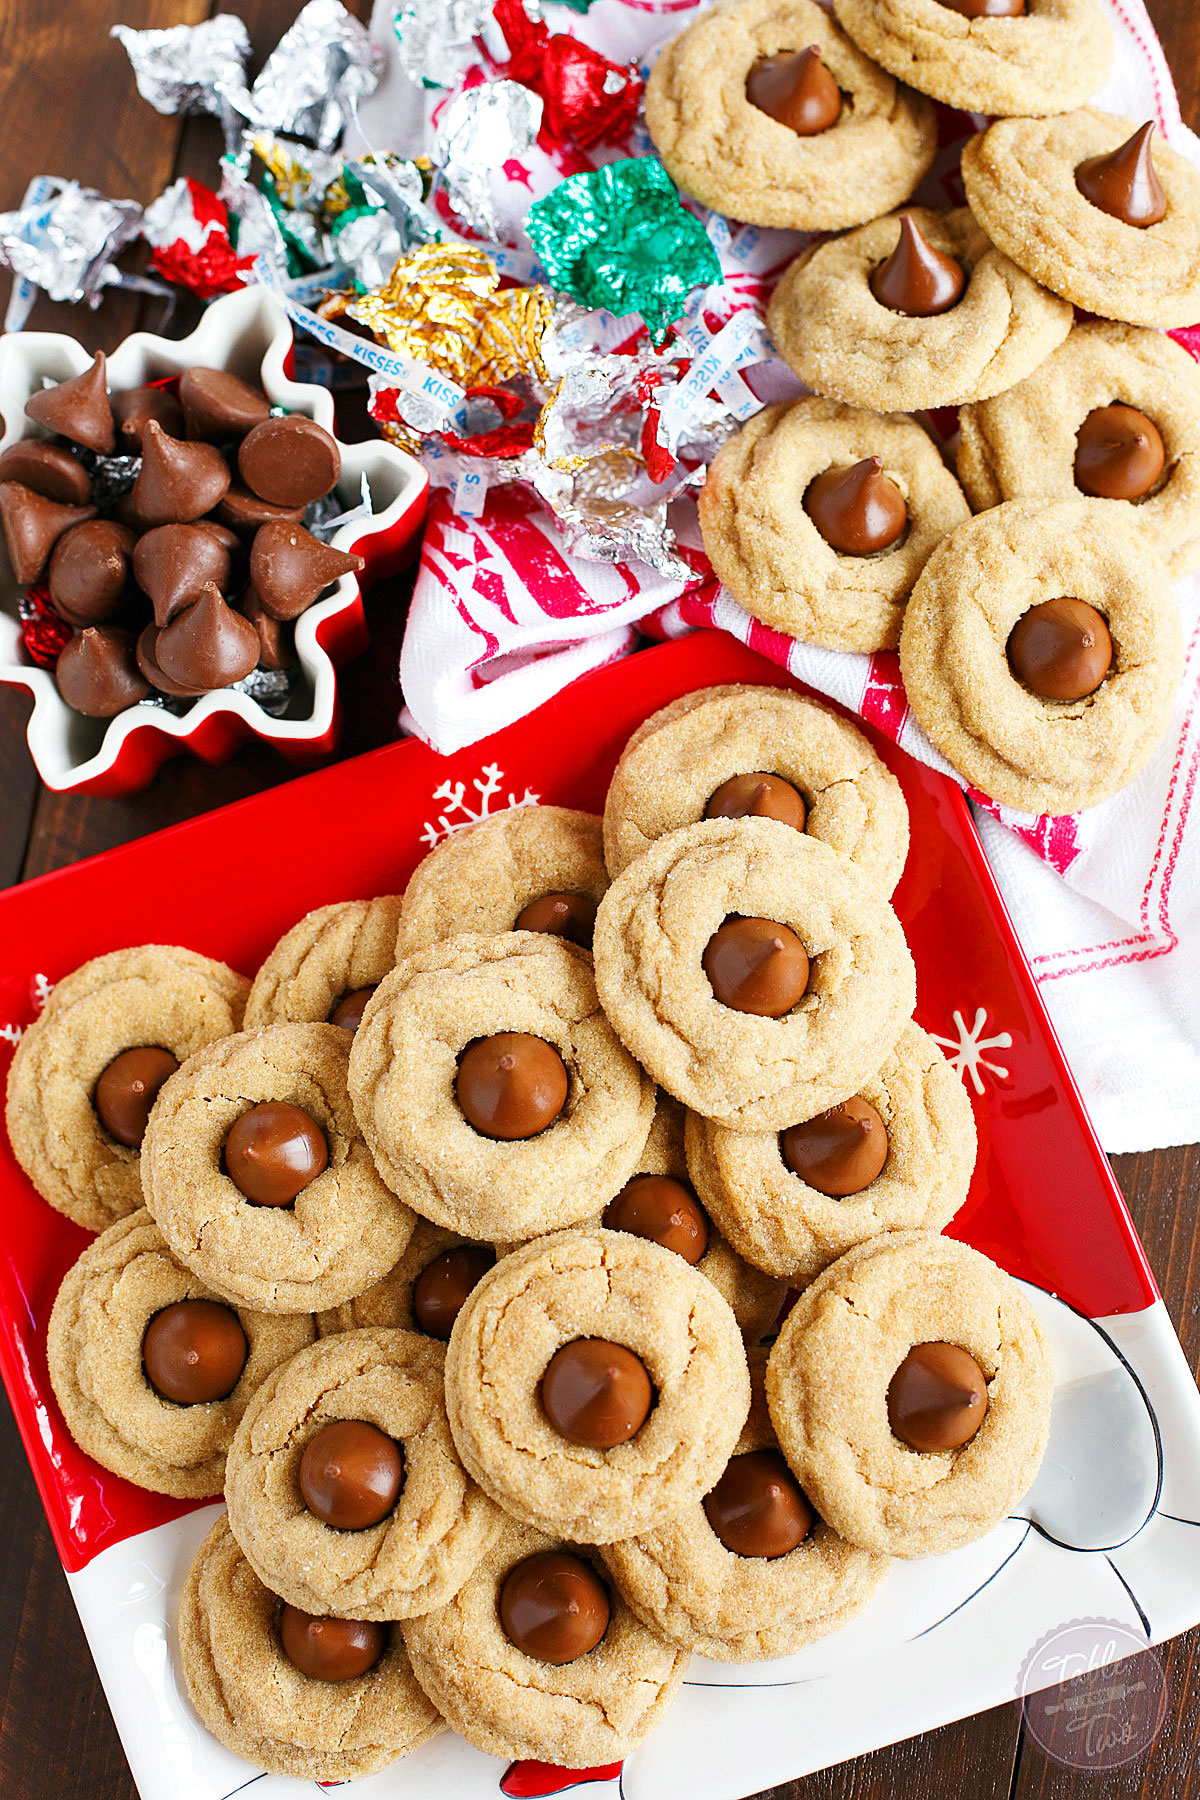 These classic peanut butter blossom cookies are a traditional holiday cookie around Christmas time! Soft and pillowy with a chocolate Hershey kiss in the center! You'll want to make a large batch as they are way too easy to eat and your family won't be able to keep their hands out of the cookie jar!